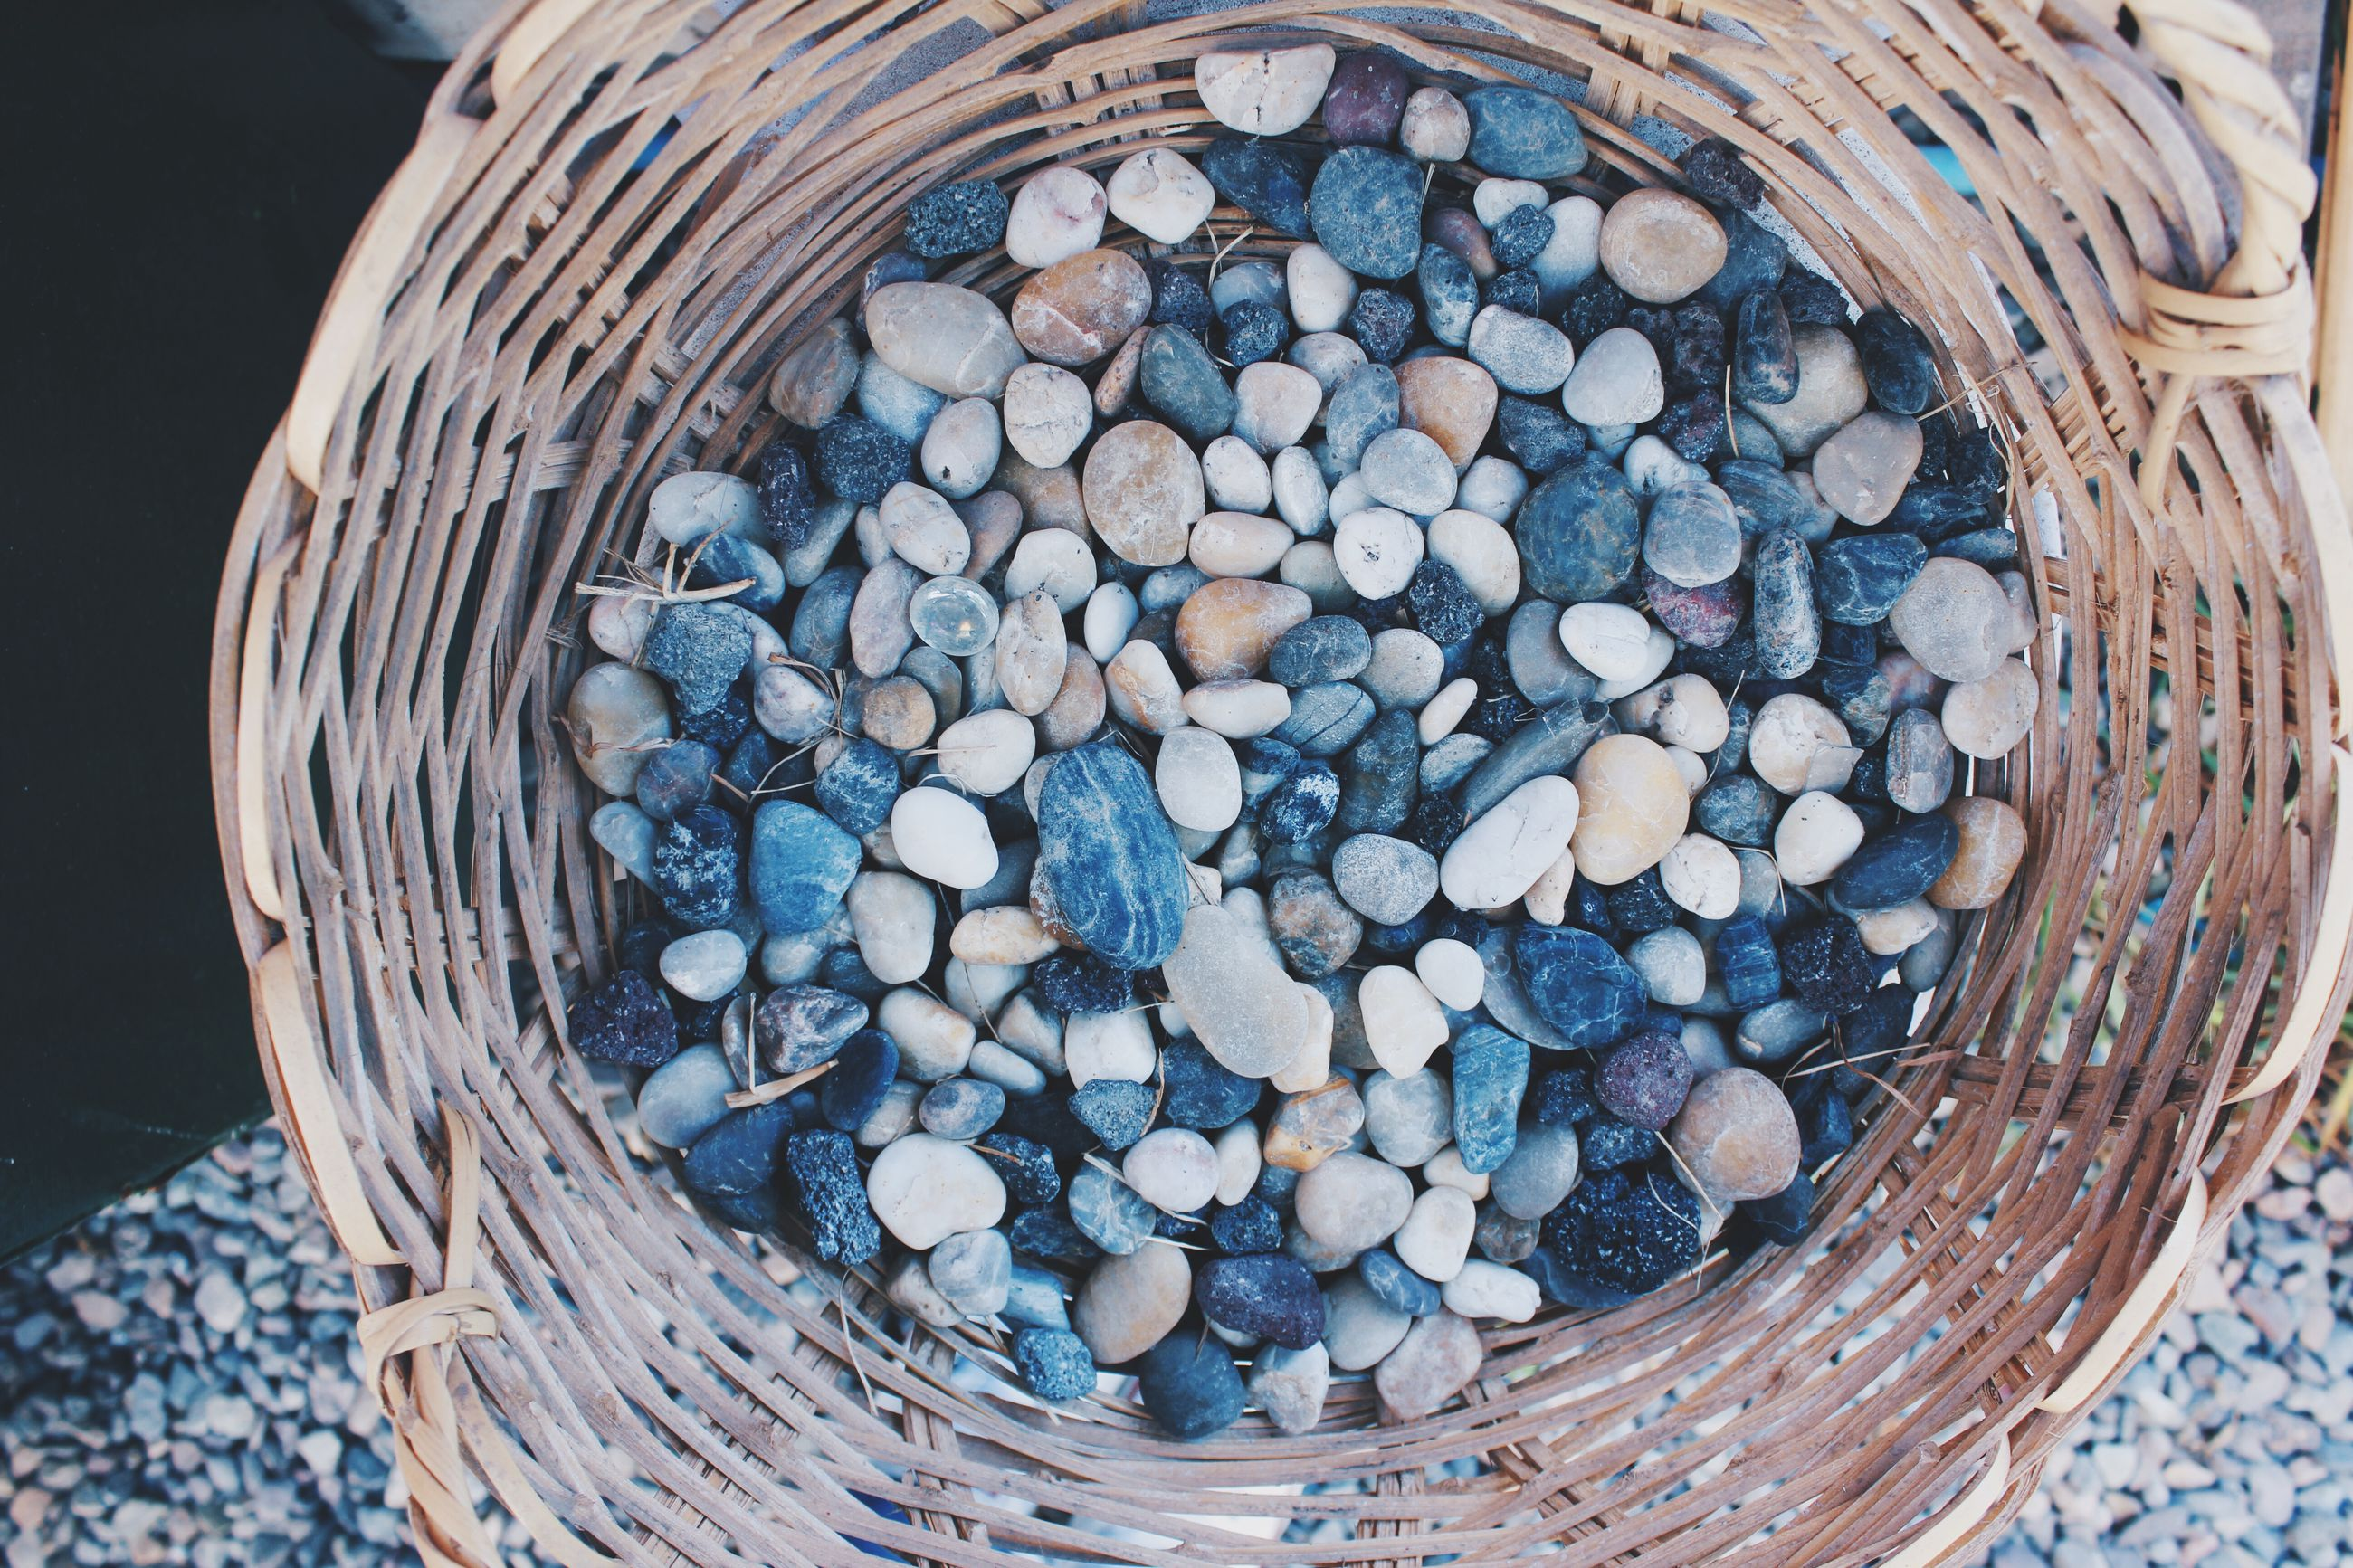 Close-Up High Angle View Of Pebbles In Baskets